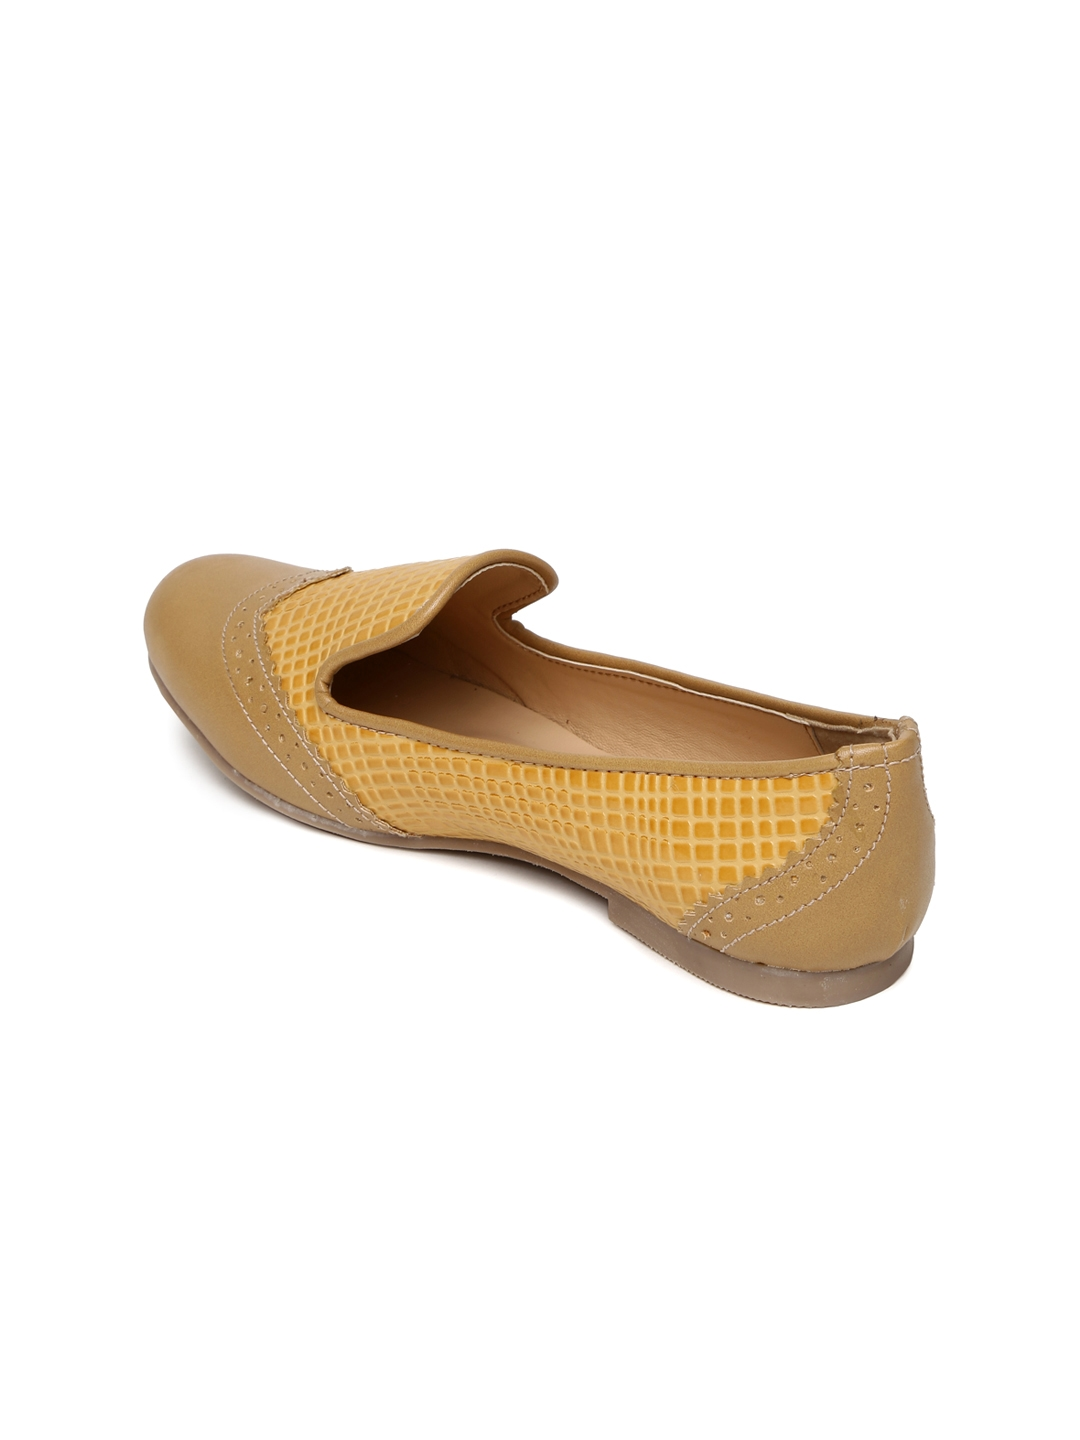 2e925f5ad Buy Lavie Women Mustard Yellow Textured Flat Shoes - Flats for Women ...